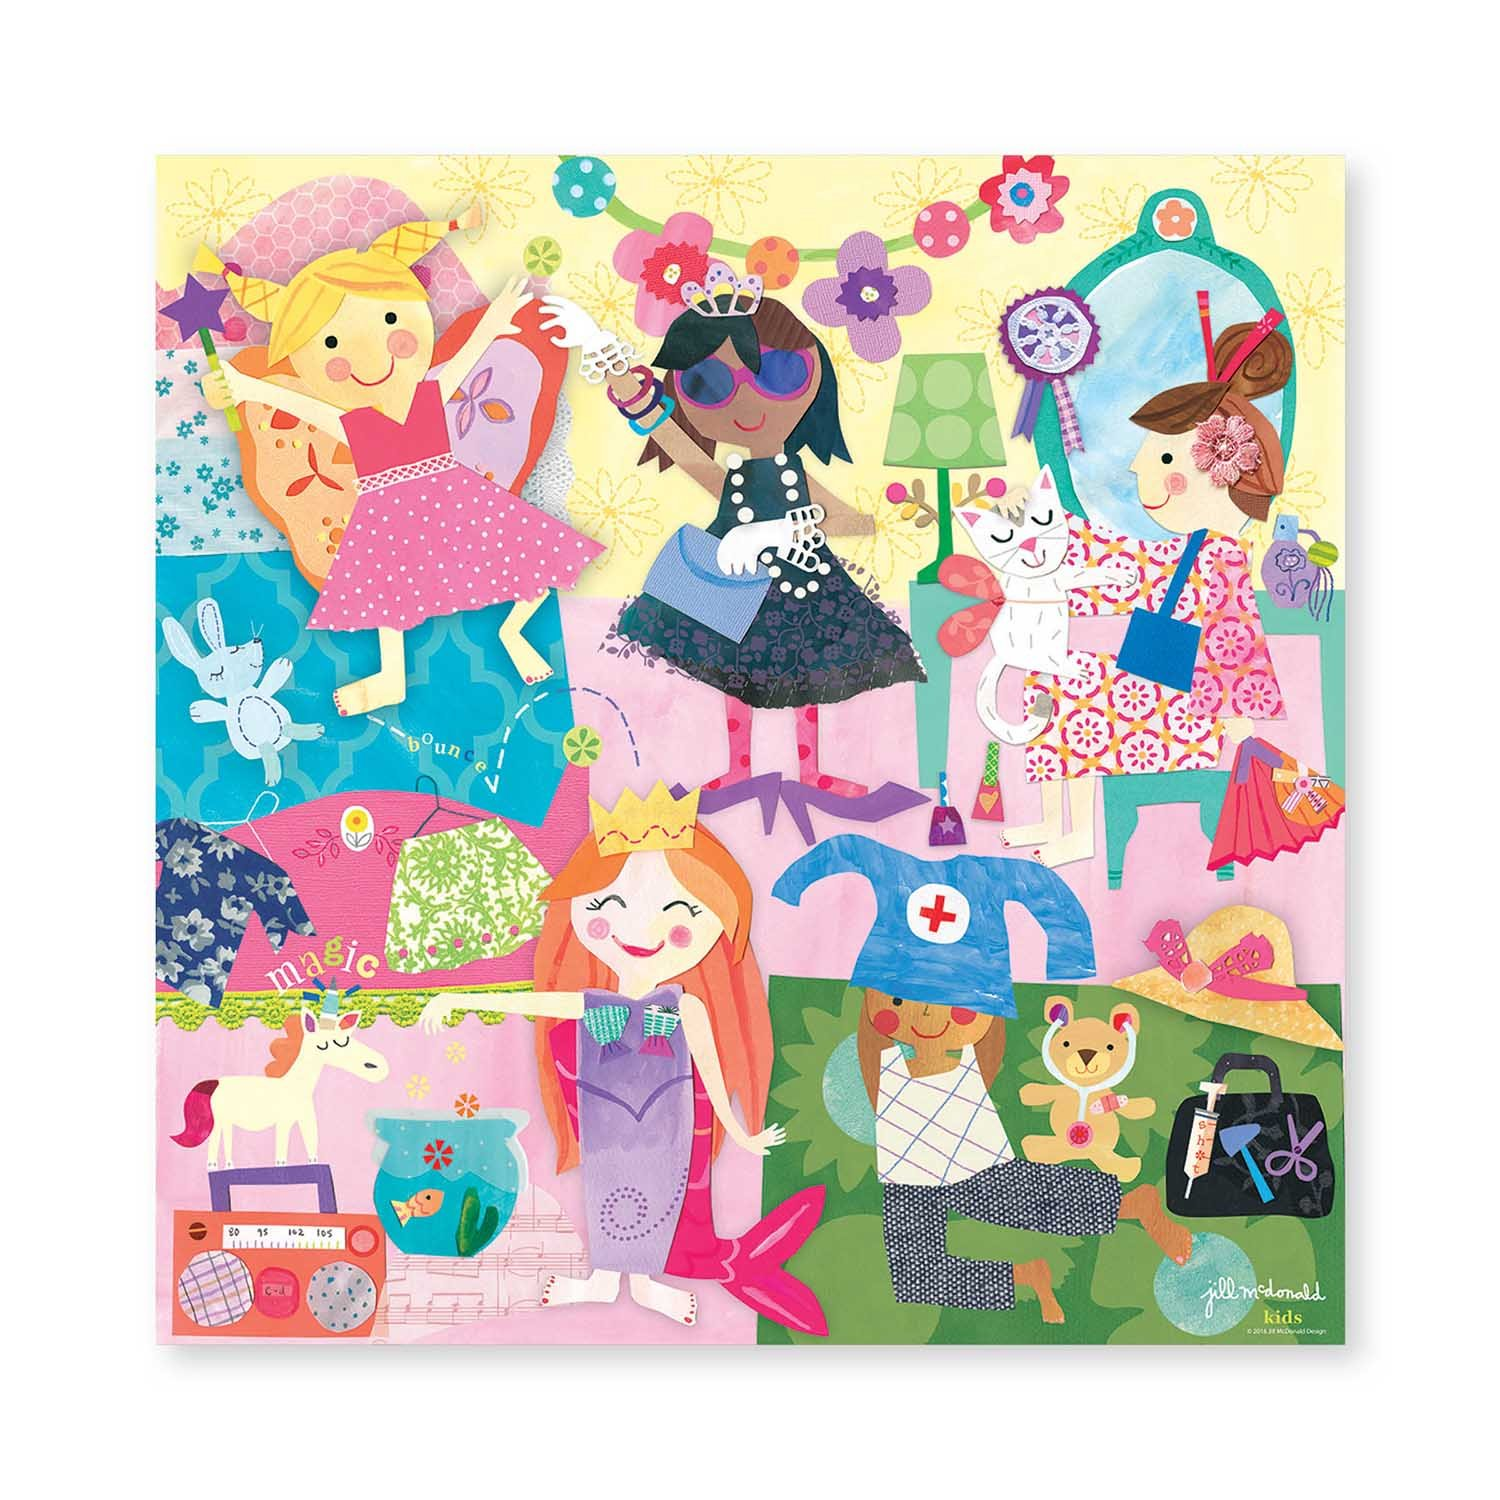 C.R 25pc BJP-11143 Gibson Ballerinas 25 Piece Jigsaw Puzzle Game for Kids